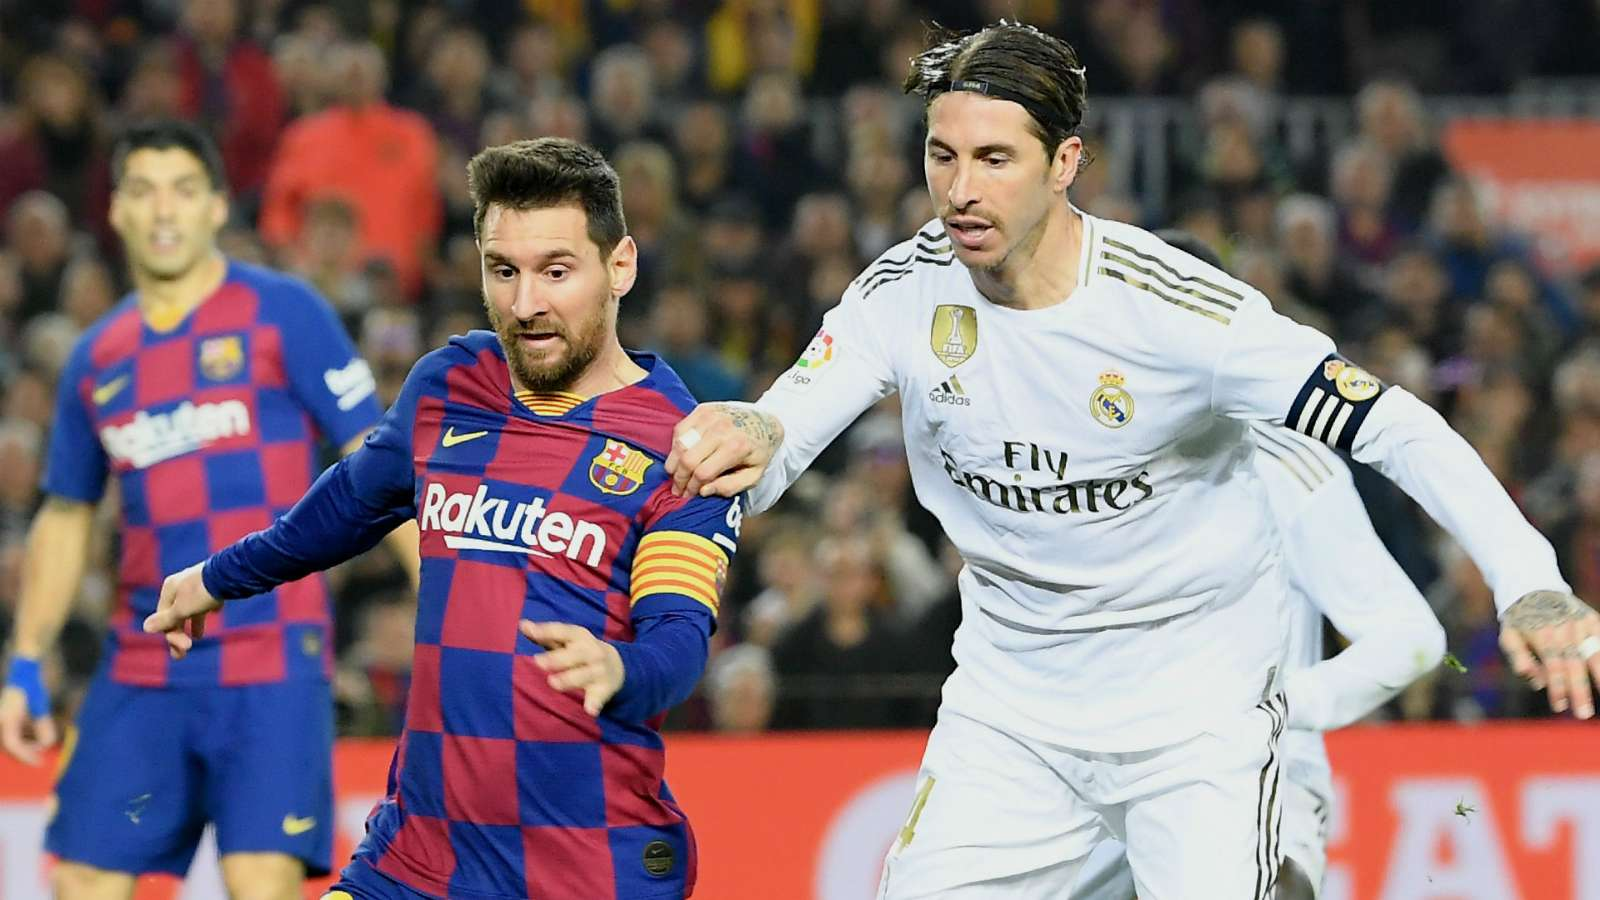 Ramos: We deserved two very clear penalties